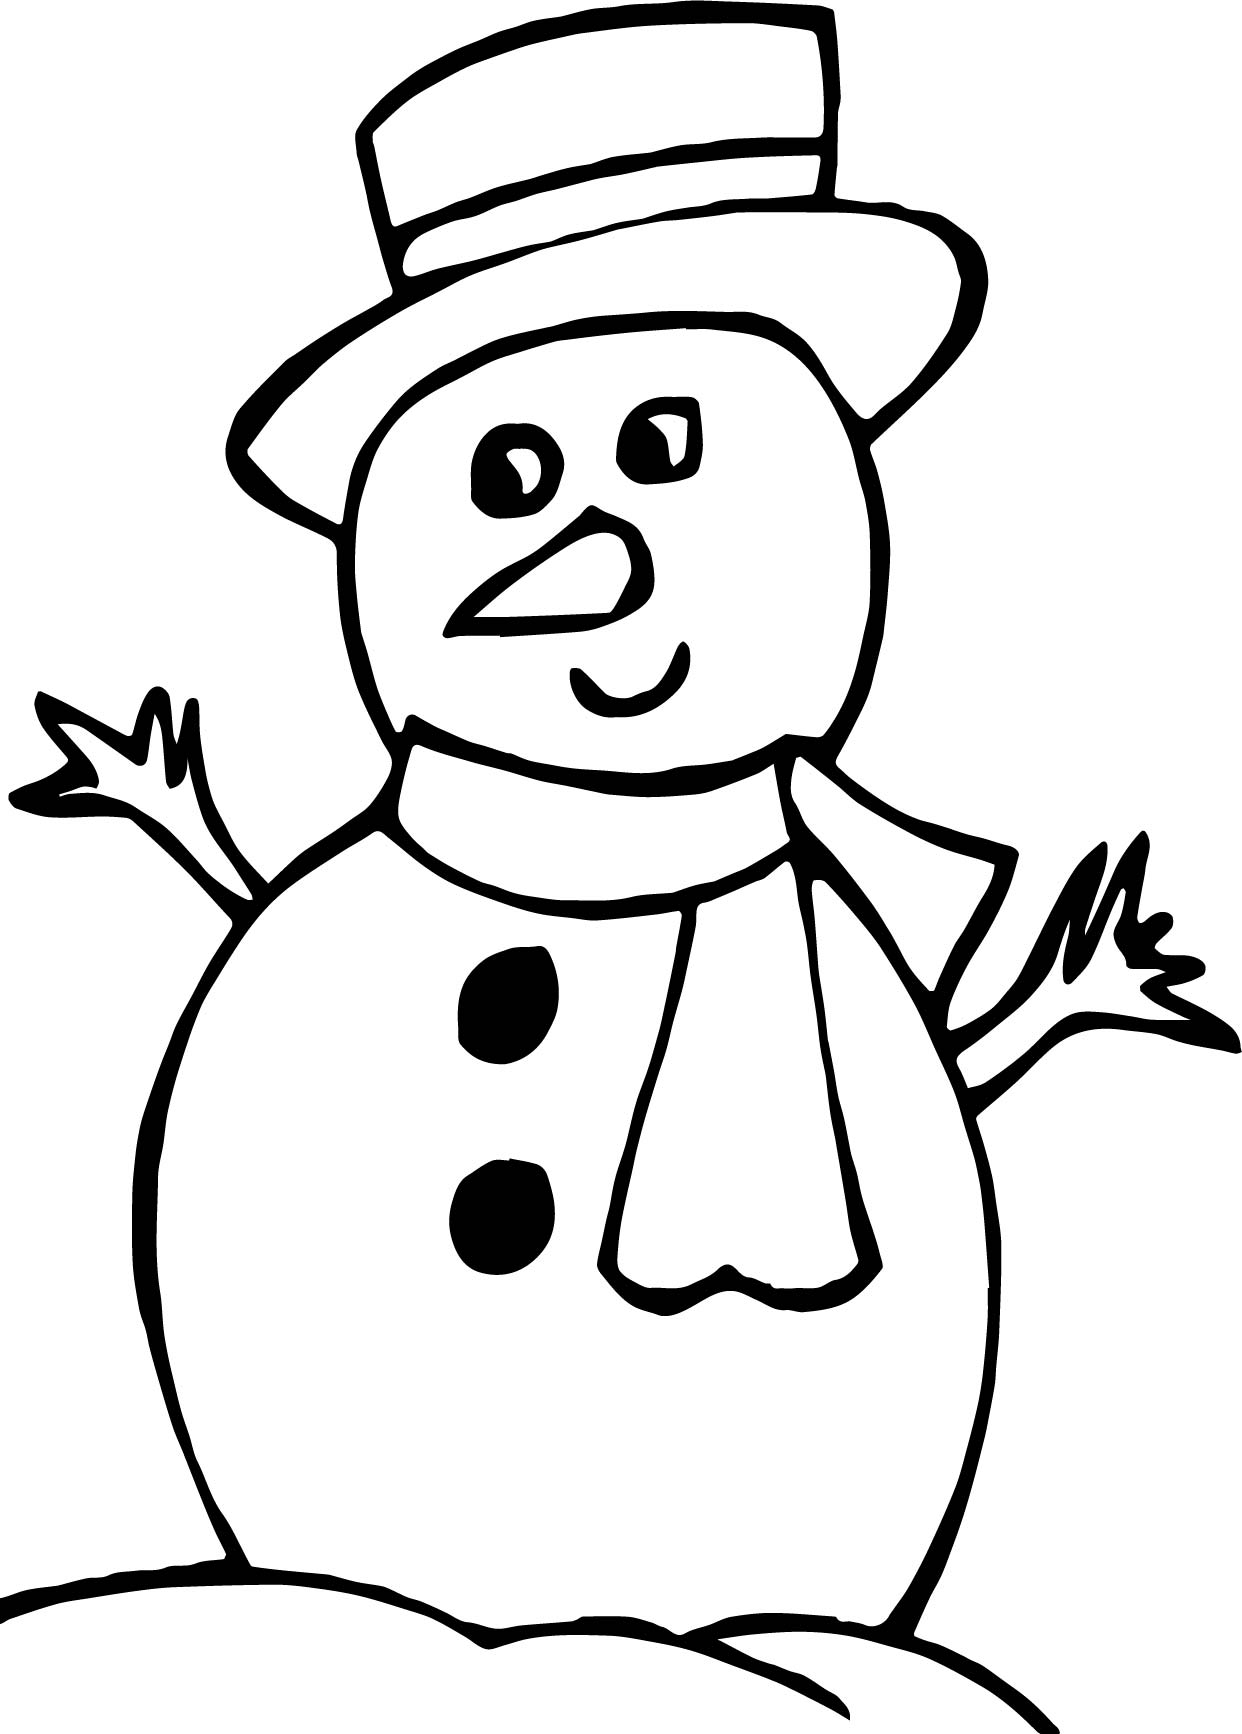 winter looking snowman coloring page wecoloringpage